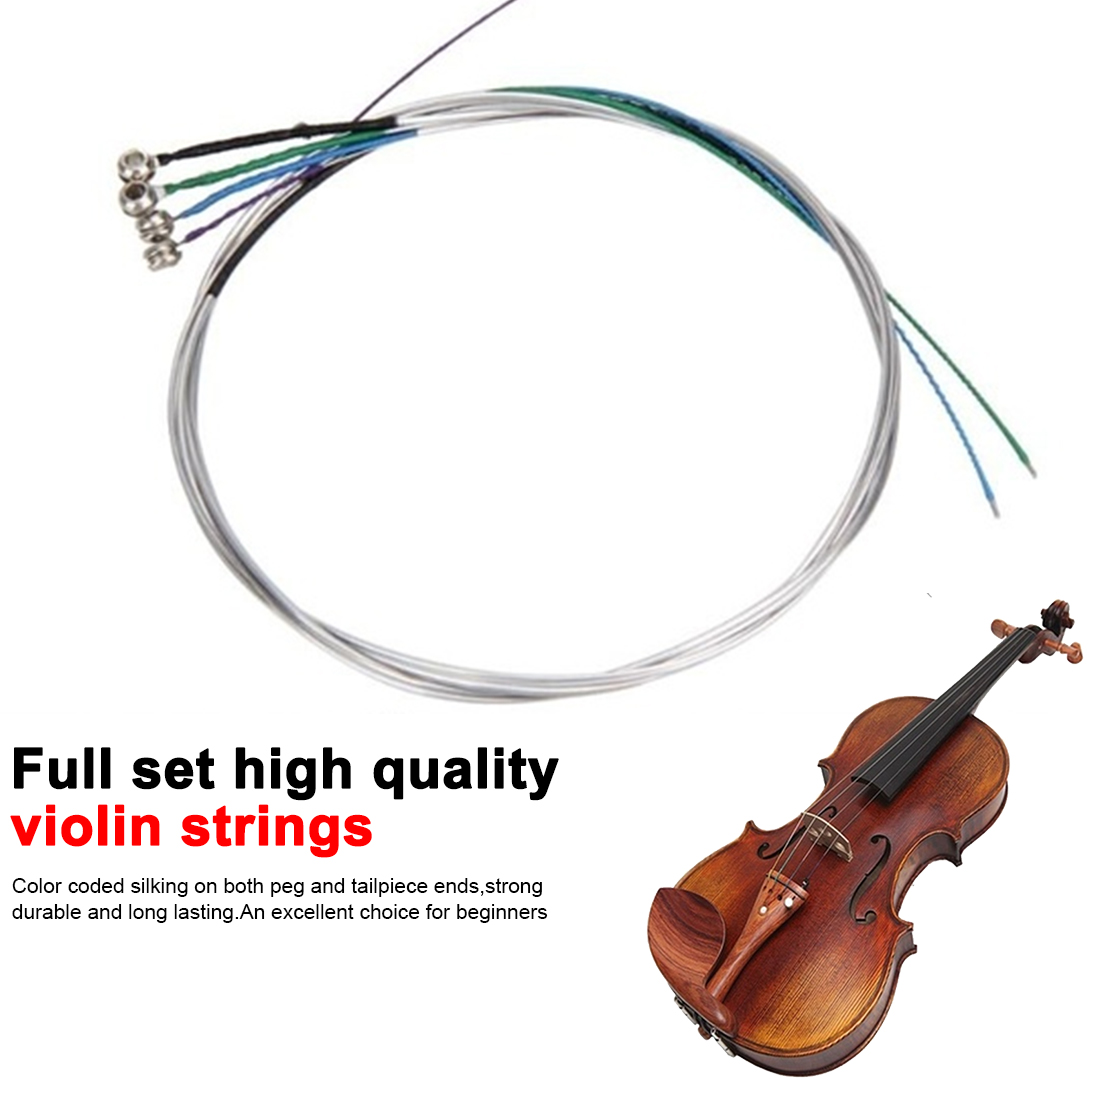 Full Set High Quality Violin Strings Size 4/4 & 3/4 Violin Strings Steel Strings G D A And E Musical Instrument Accessories